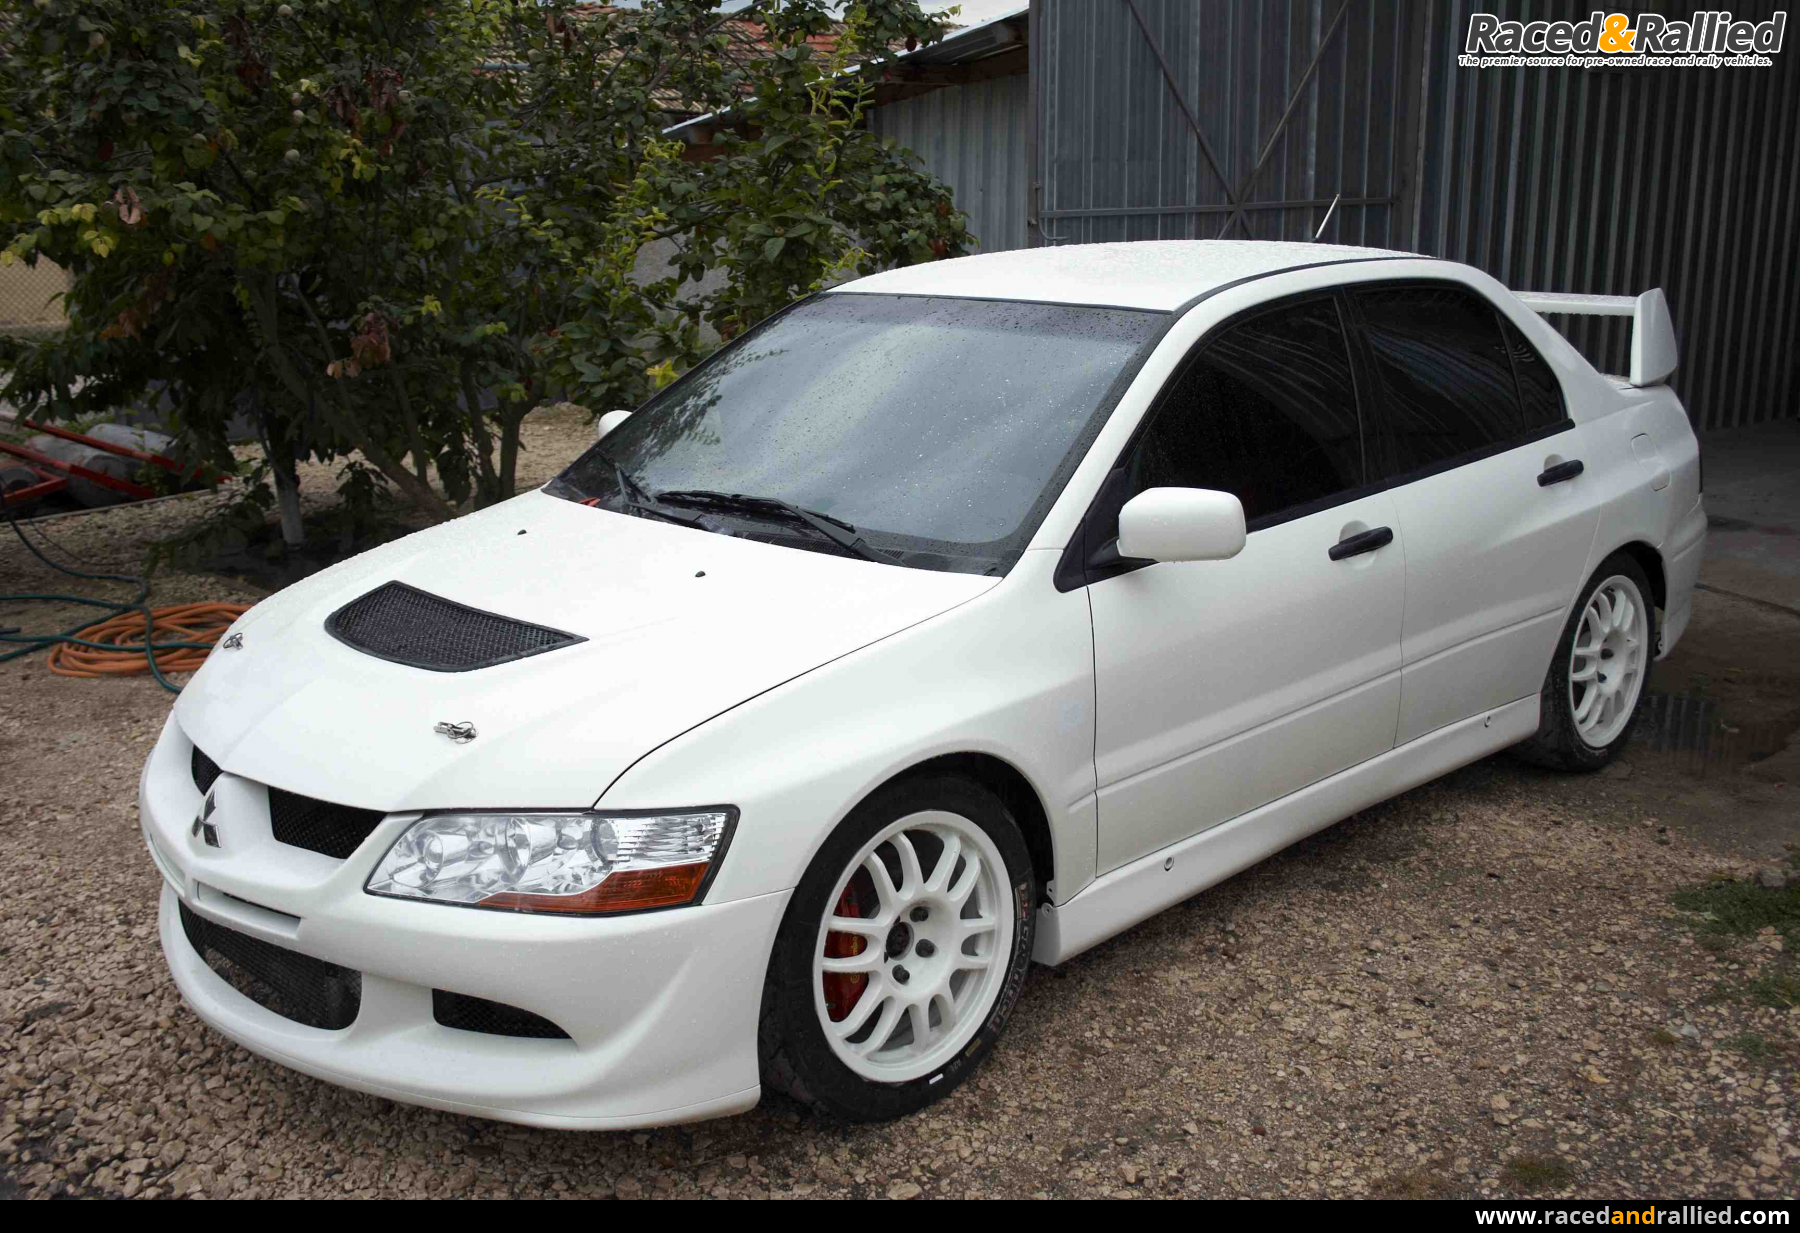 Mitsubishi Lancer Evo 8 Gp N Lhd For Sale Rally Cars For Sale At